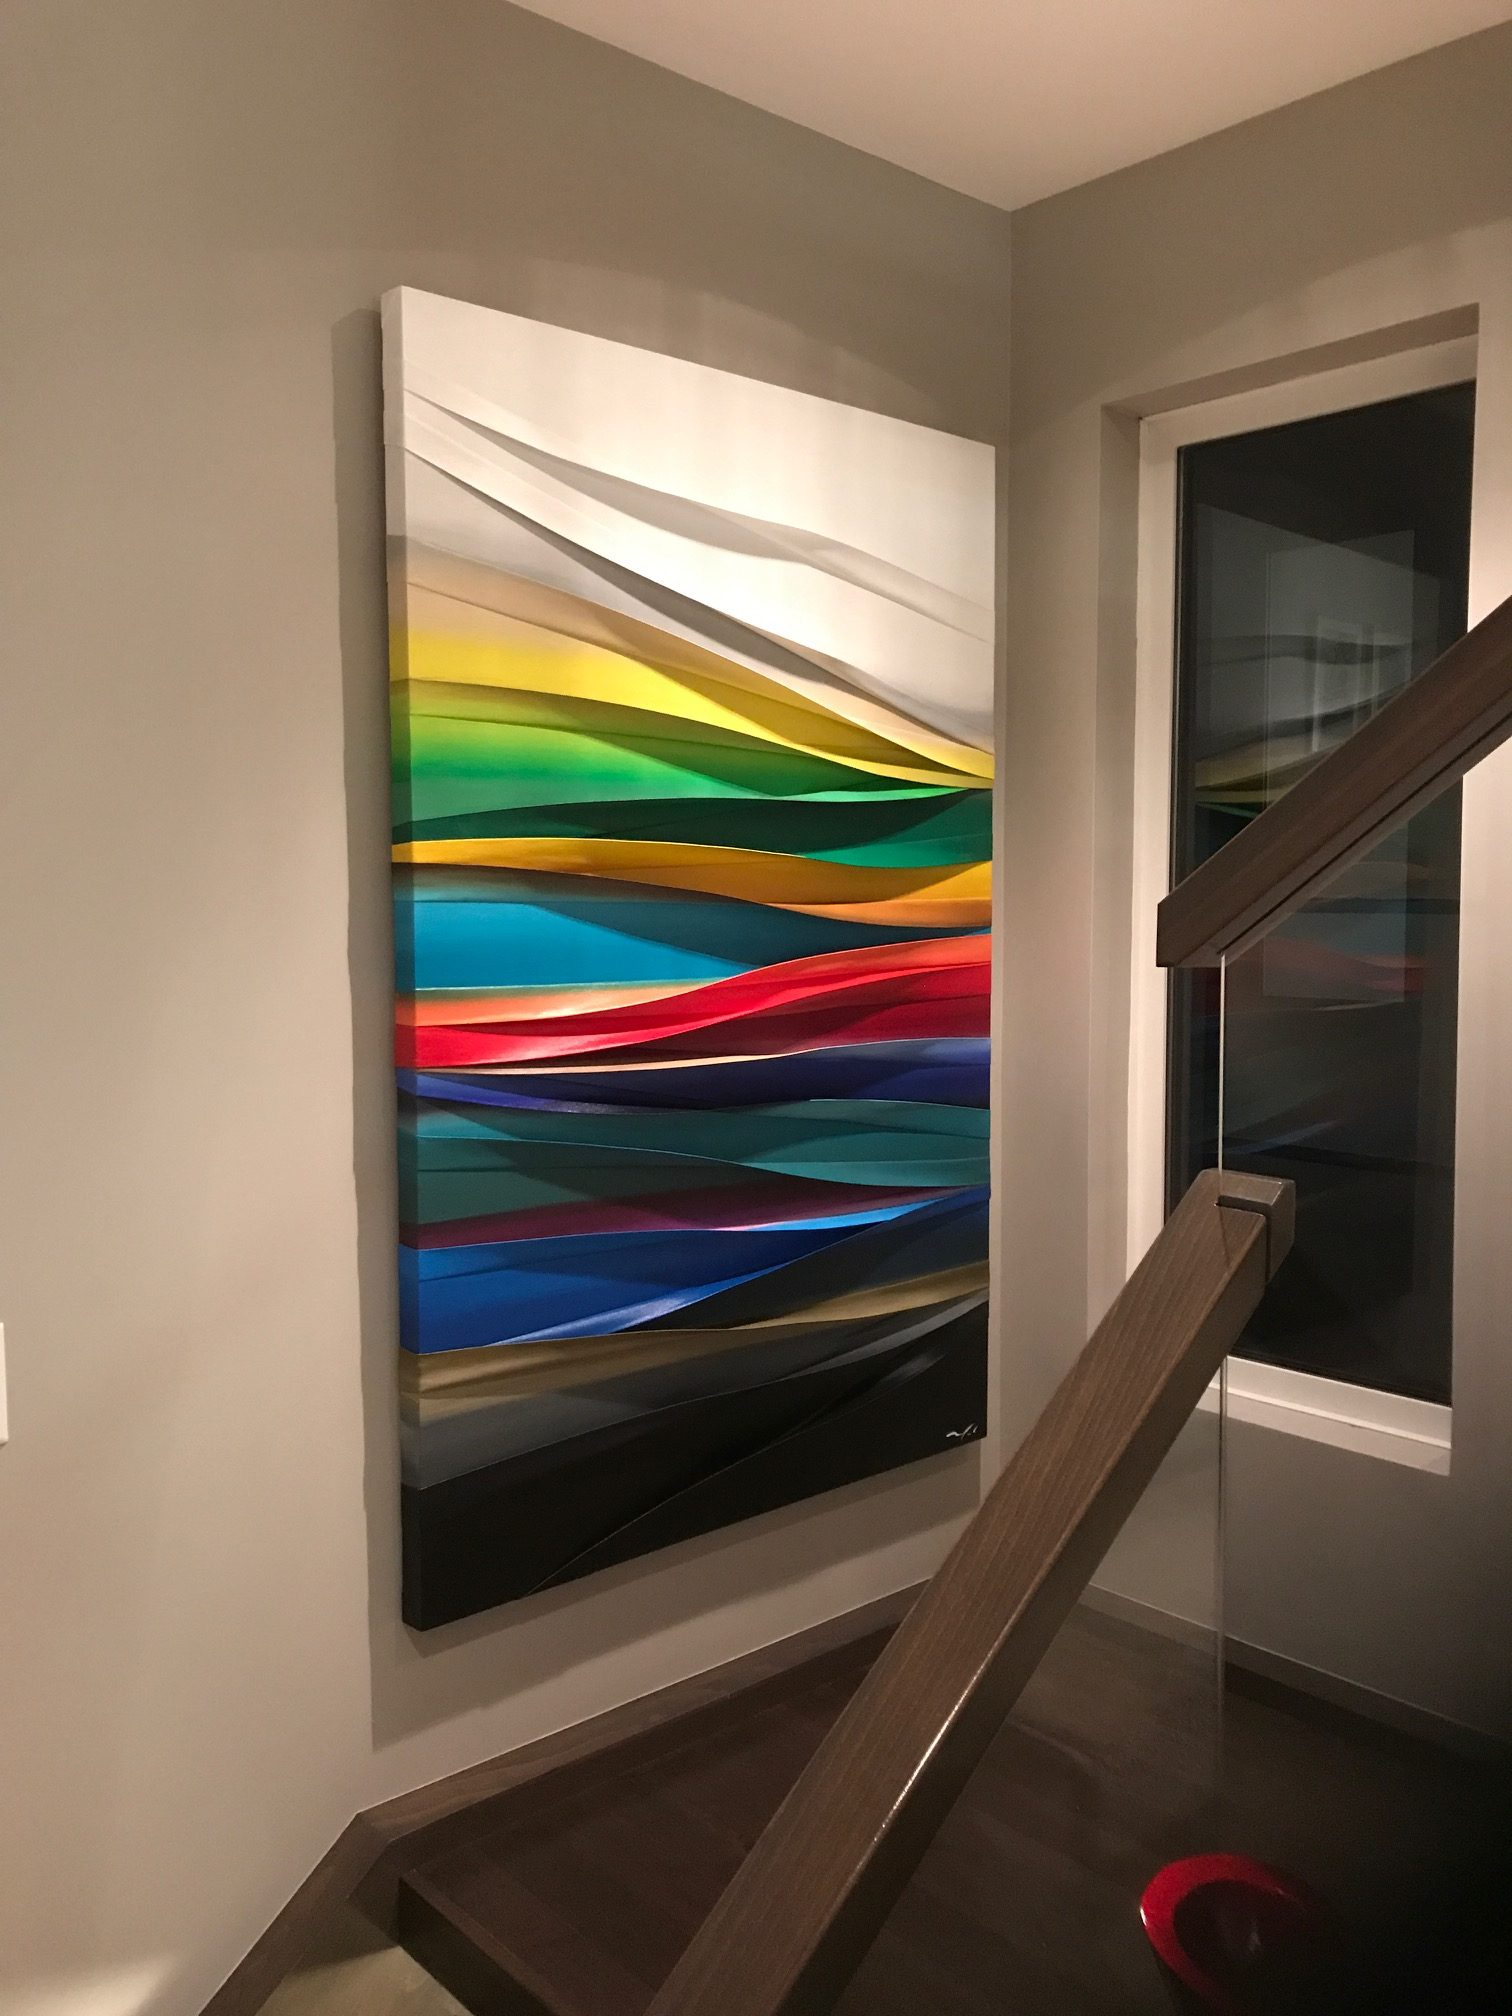 Simple Harmonie, mixed media painting by Melanie Giguere, installed | Effusion Art Gallery + Cast Glass Studio, Invermere BC